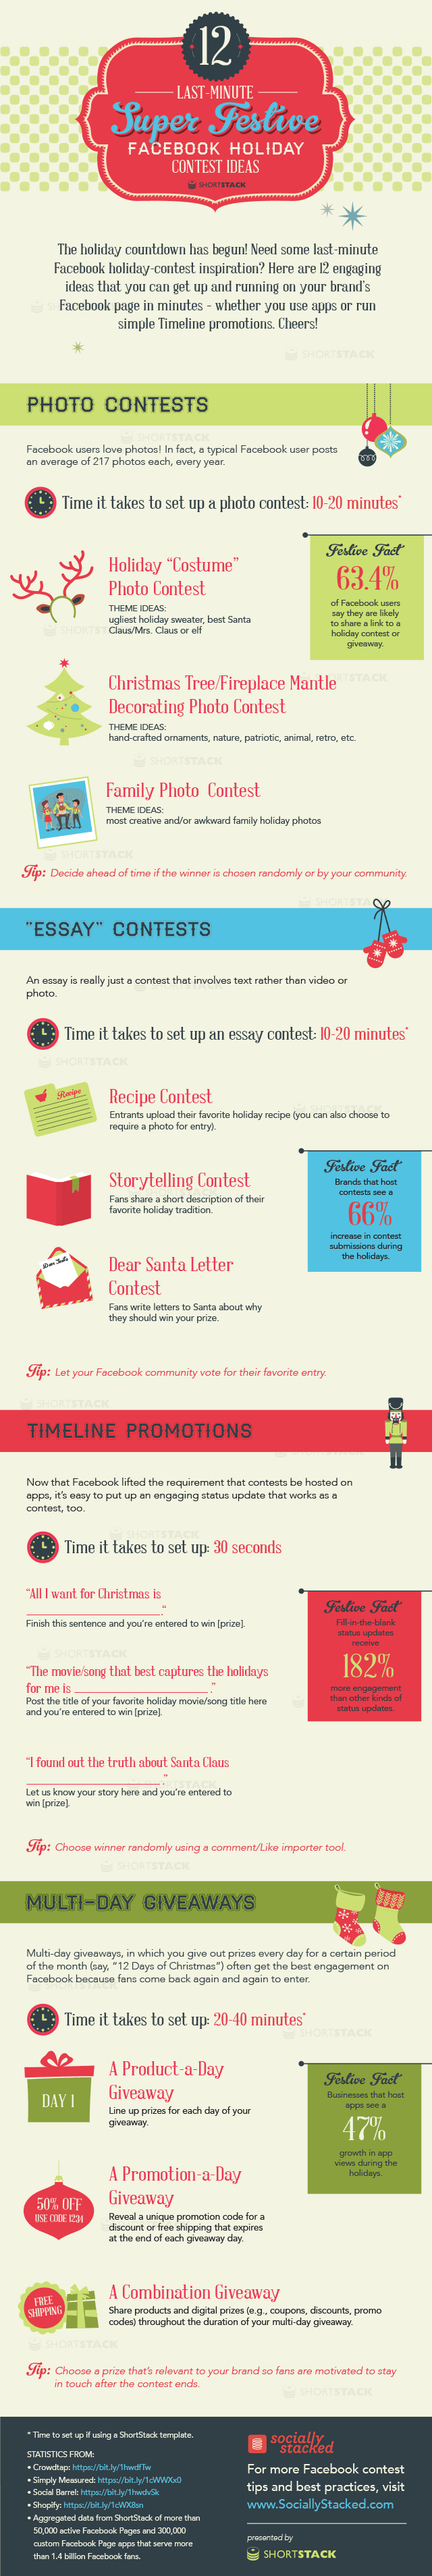 facebook holiday contests last minute super festive ideas original holiday contest ideas